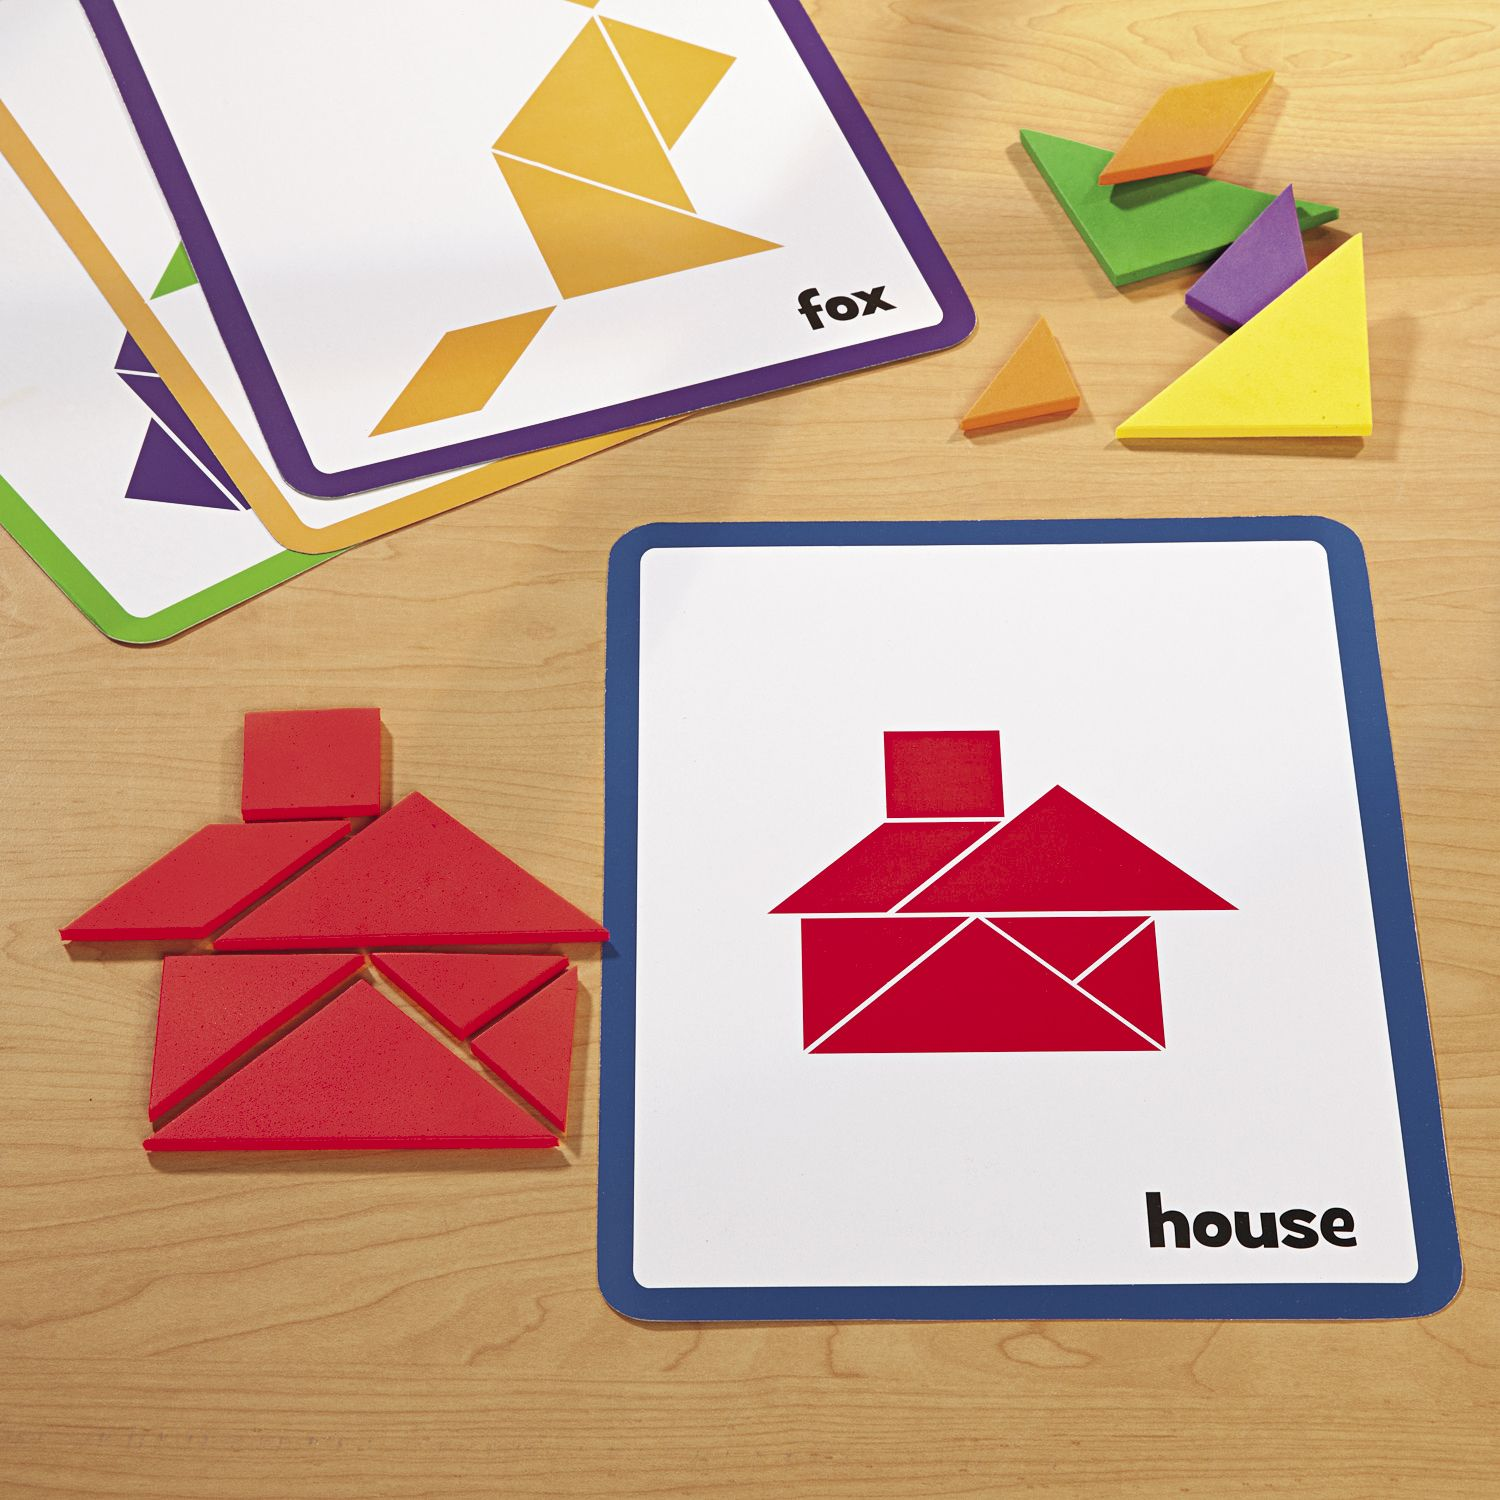 Tangram Foam Shapes Manipulatives